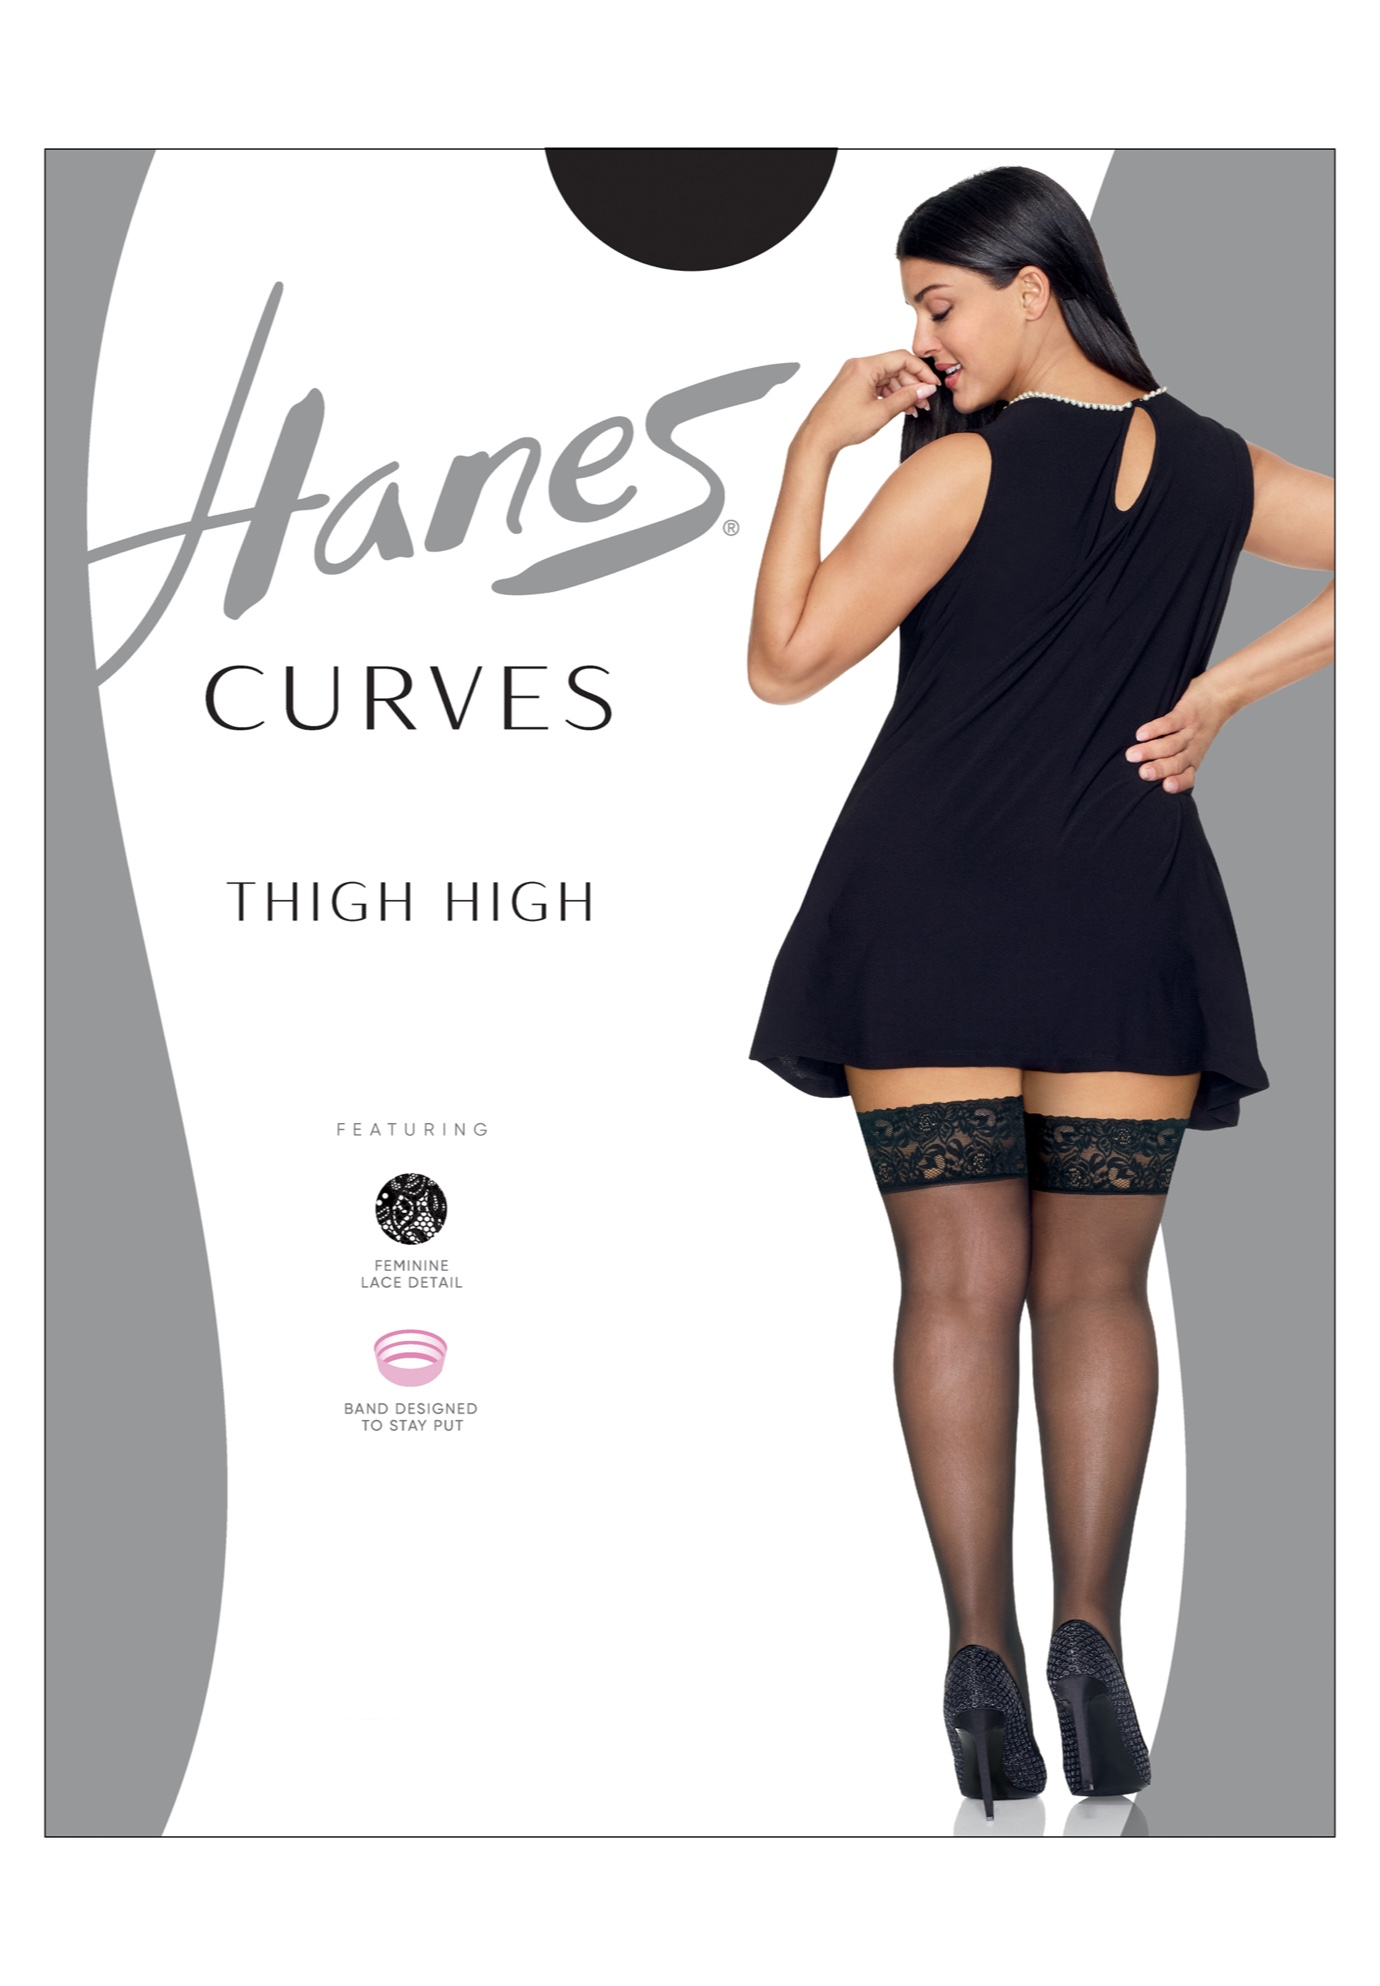 Curves Lace Thigh High,